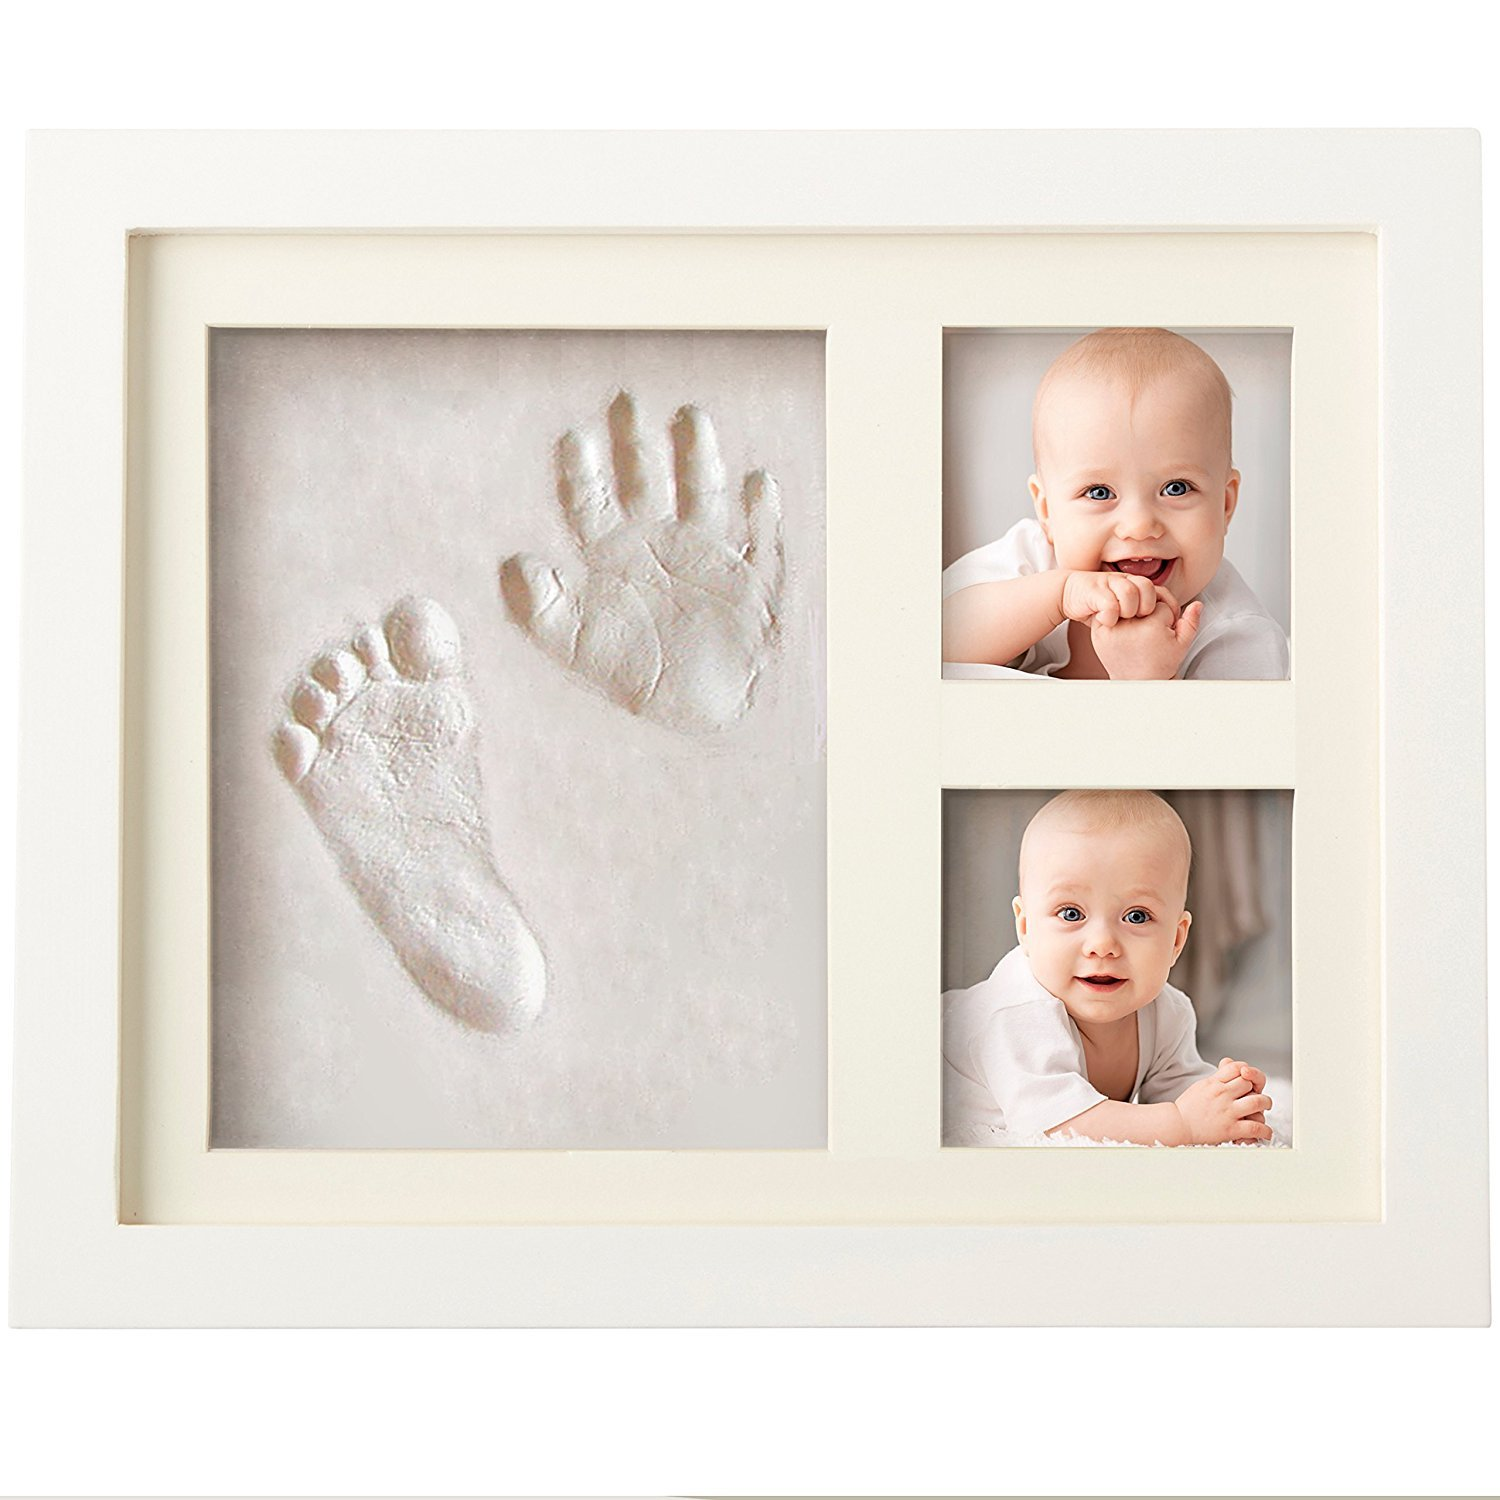 Veahma Baby Quality Clay Imprint Kit! White Wood Picture Frame|(Ivory) Mat|Non-Toxic Clay|Hand/Foot Print Kit|Neat Baby Shower Gift for New Born Baby, Boy, Girl, Pet, Parents! Newest No Mold Version!